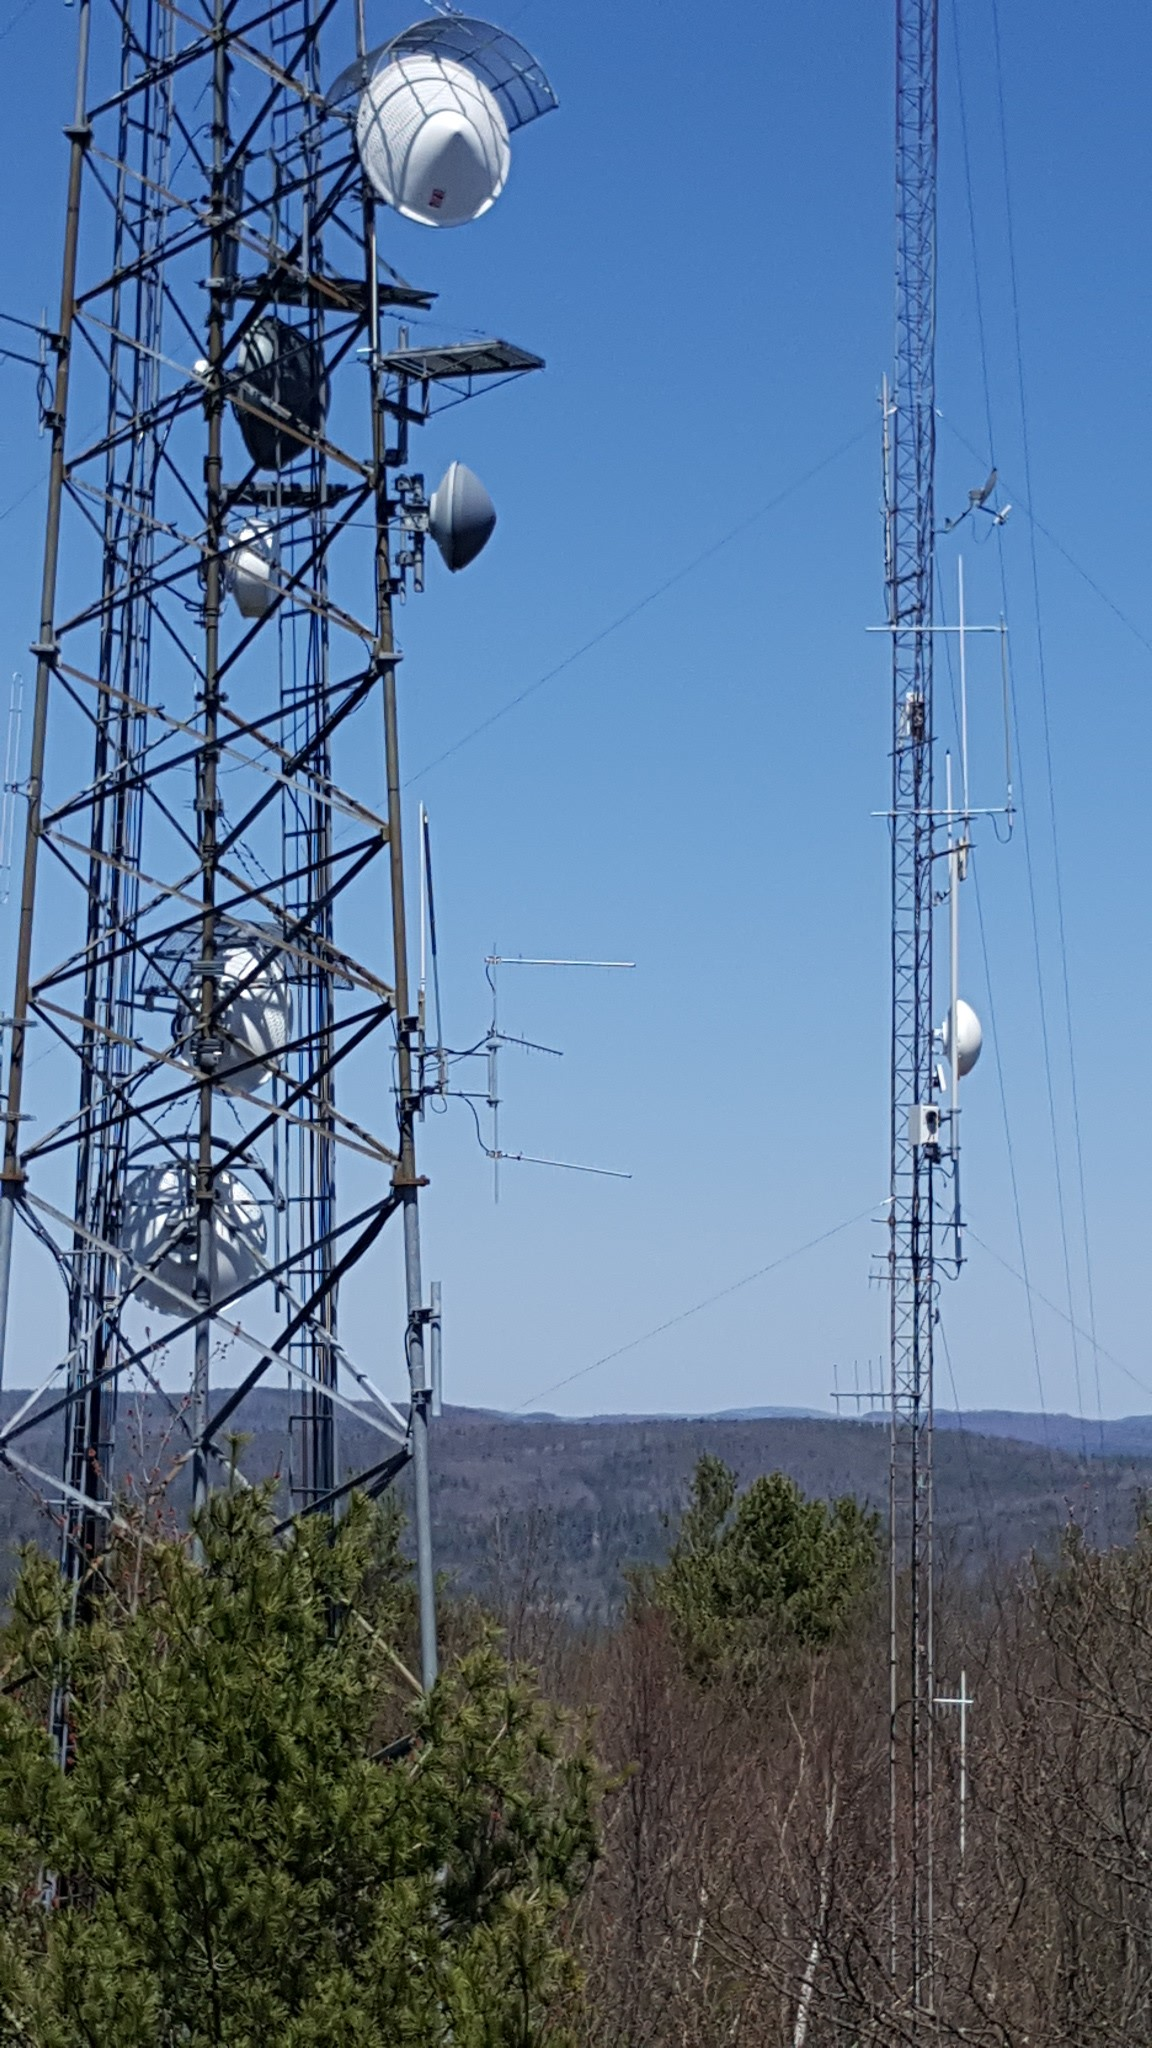 Crotched Mtn DMR - 446 975 Repeater